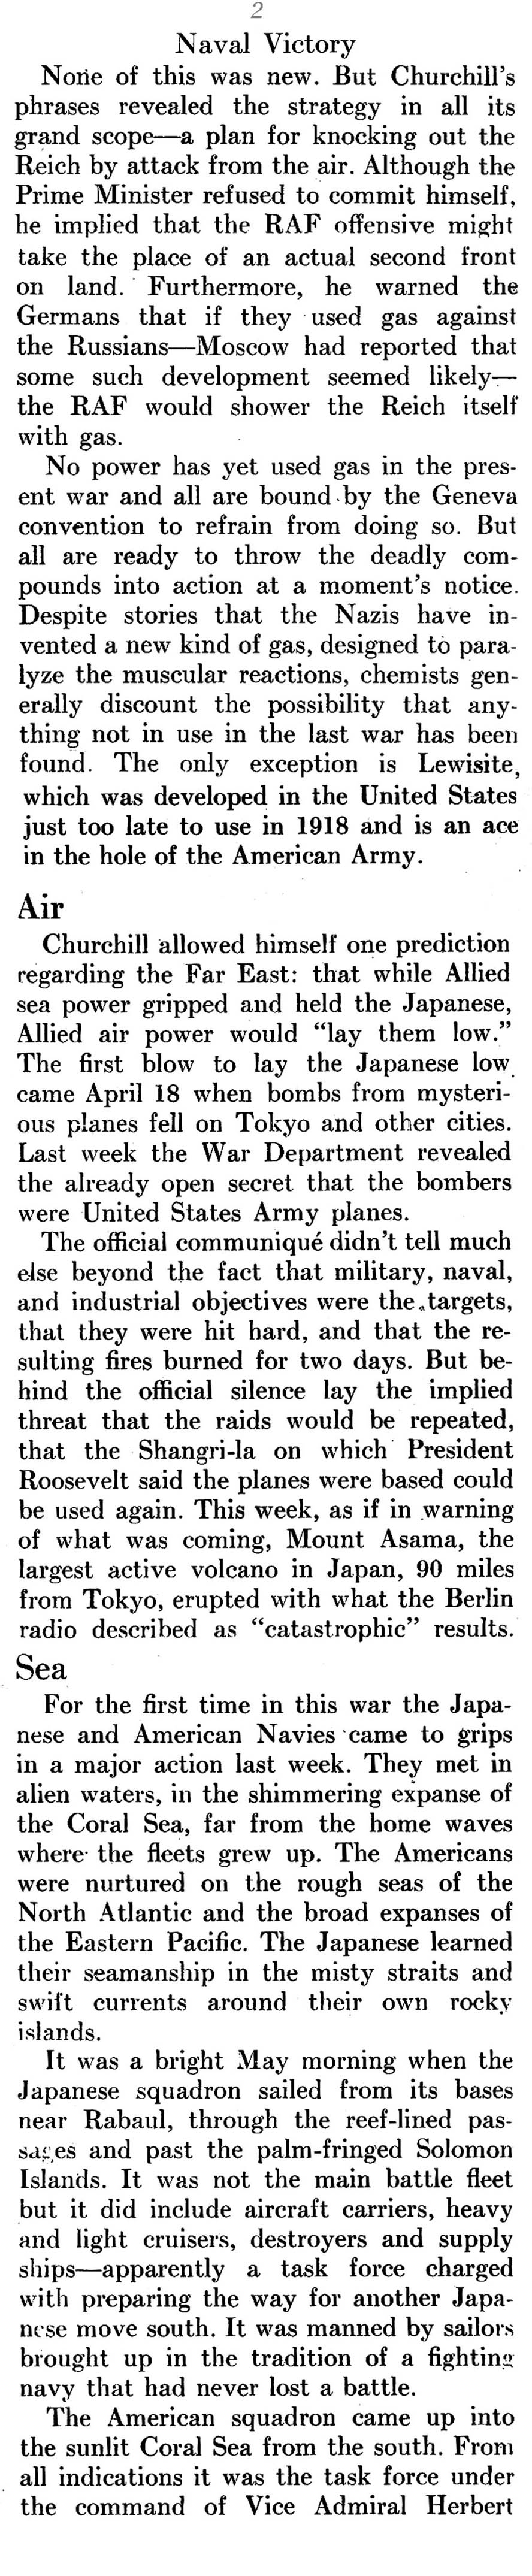 The Battle of the Coral Sea (Yank Magazine, 1943)